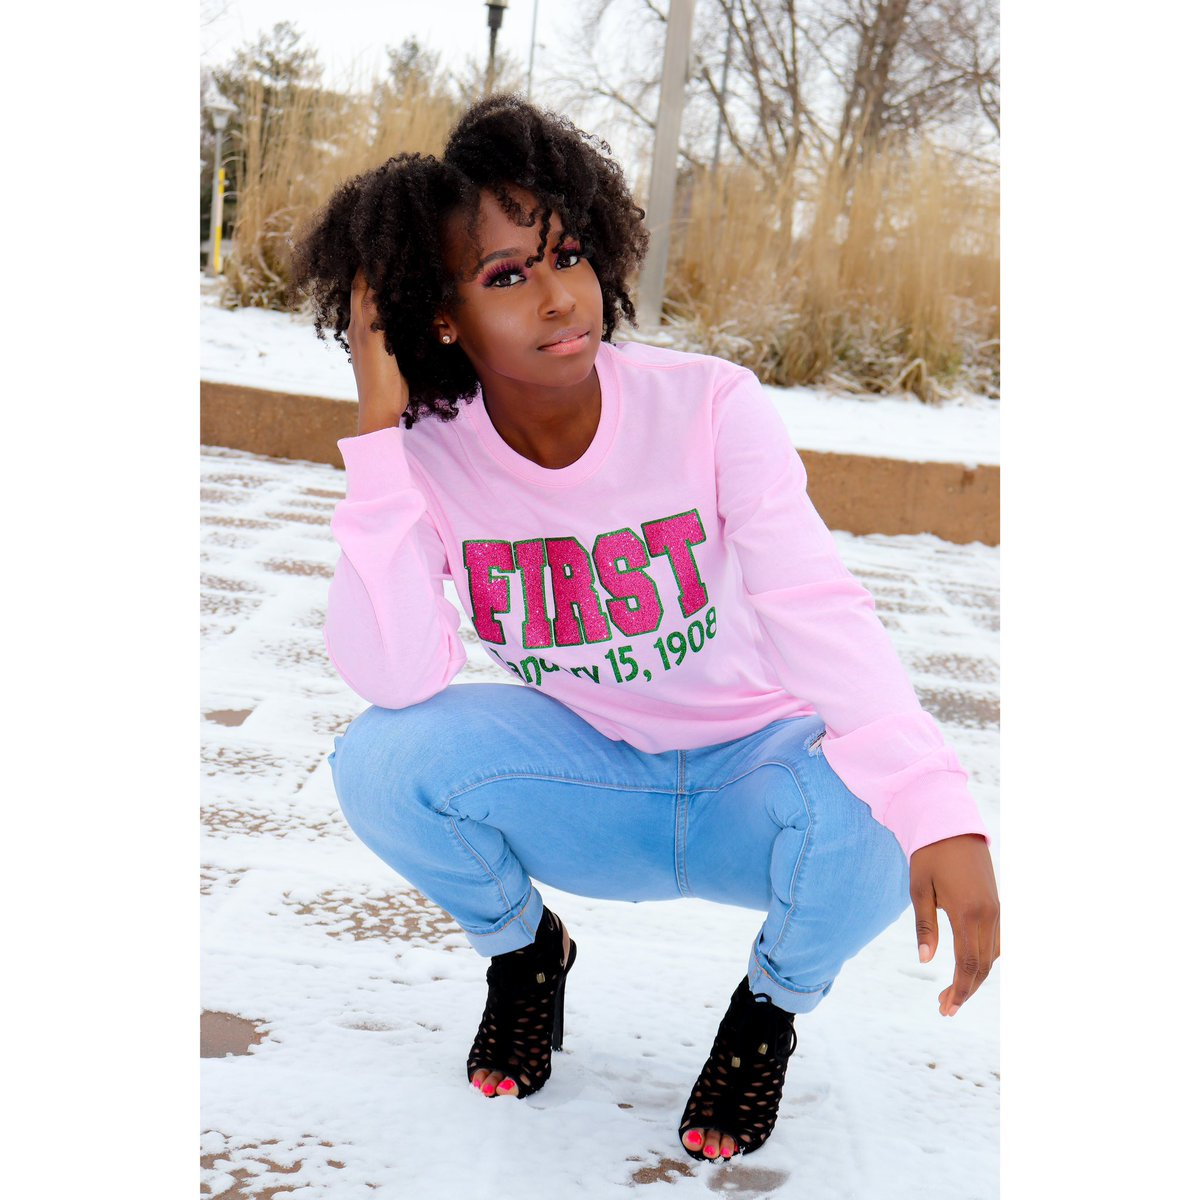 Happy Founders Day to All the Beautiful Women of Alpha Kappa Alpha Sorority Inc. Also Today means a lot to me to be apart of such a Prestigious Sorority.  The Journey of becoming apart of the 1st Sorority Alpha Kappa Alpha Sorority Inc.  was a great experience! #SkeeWee 💕💚